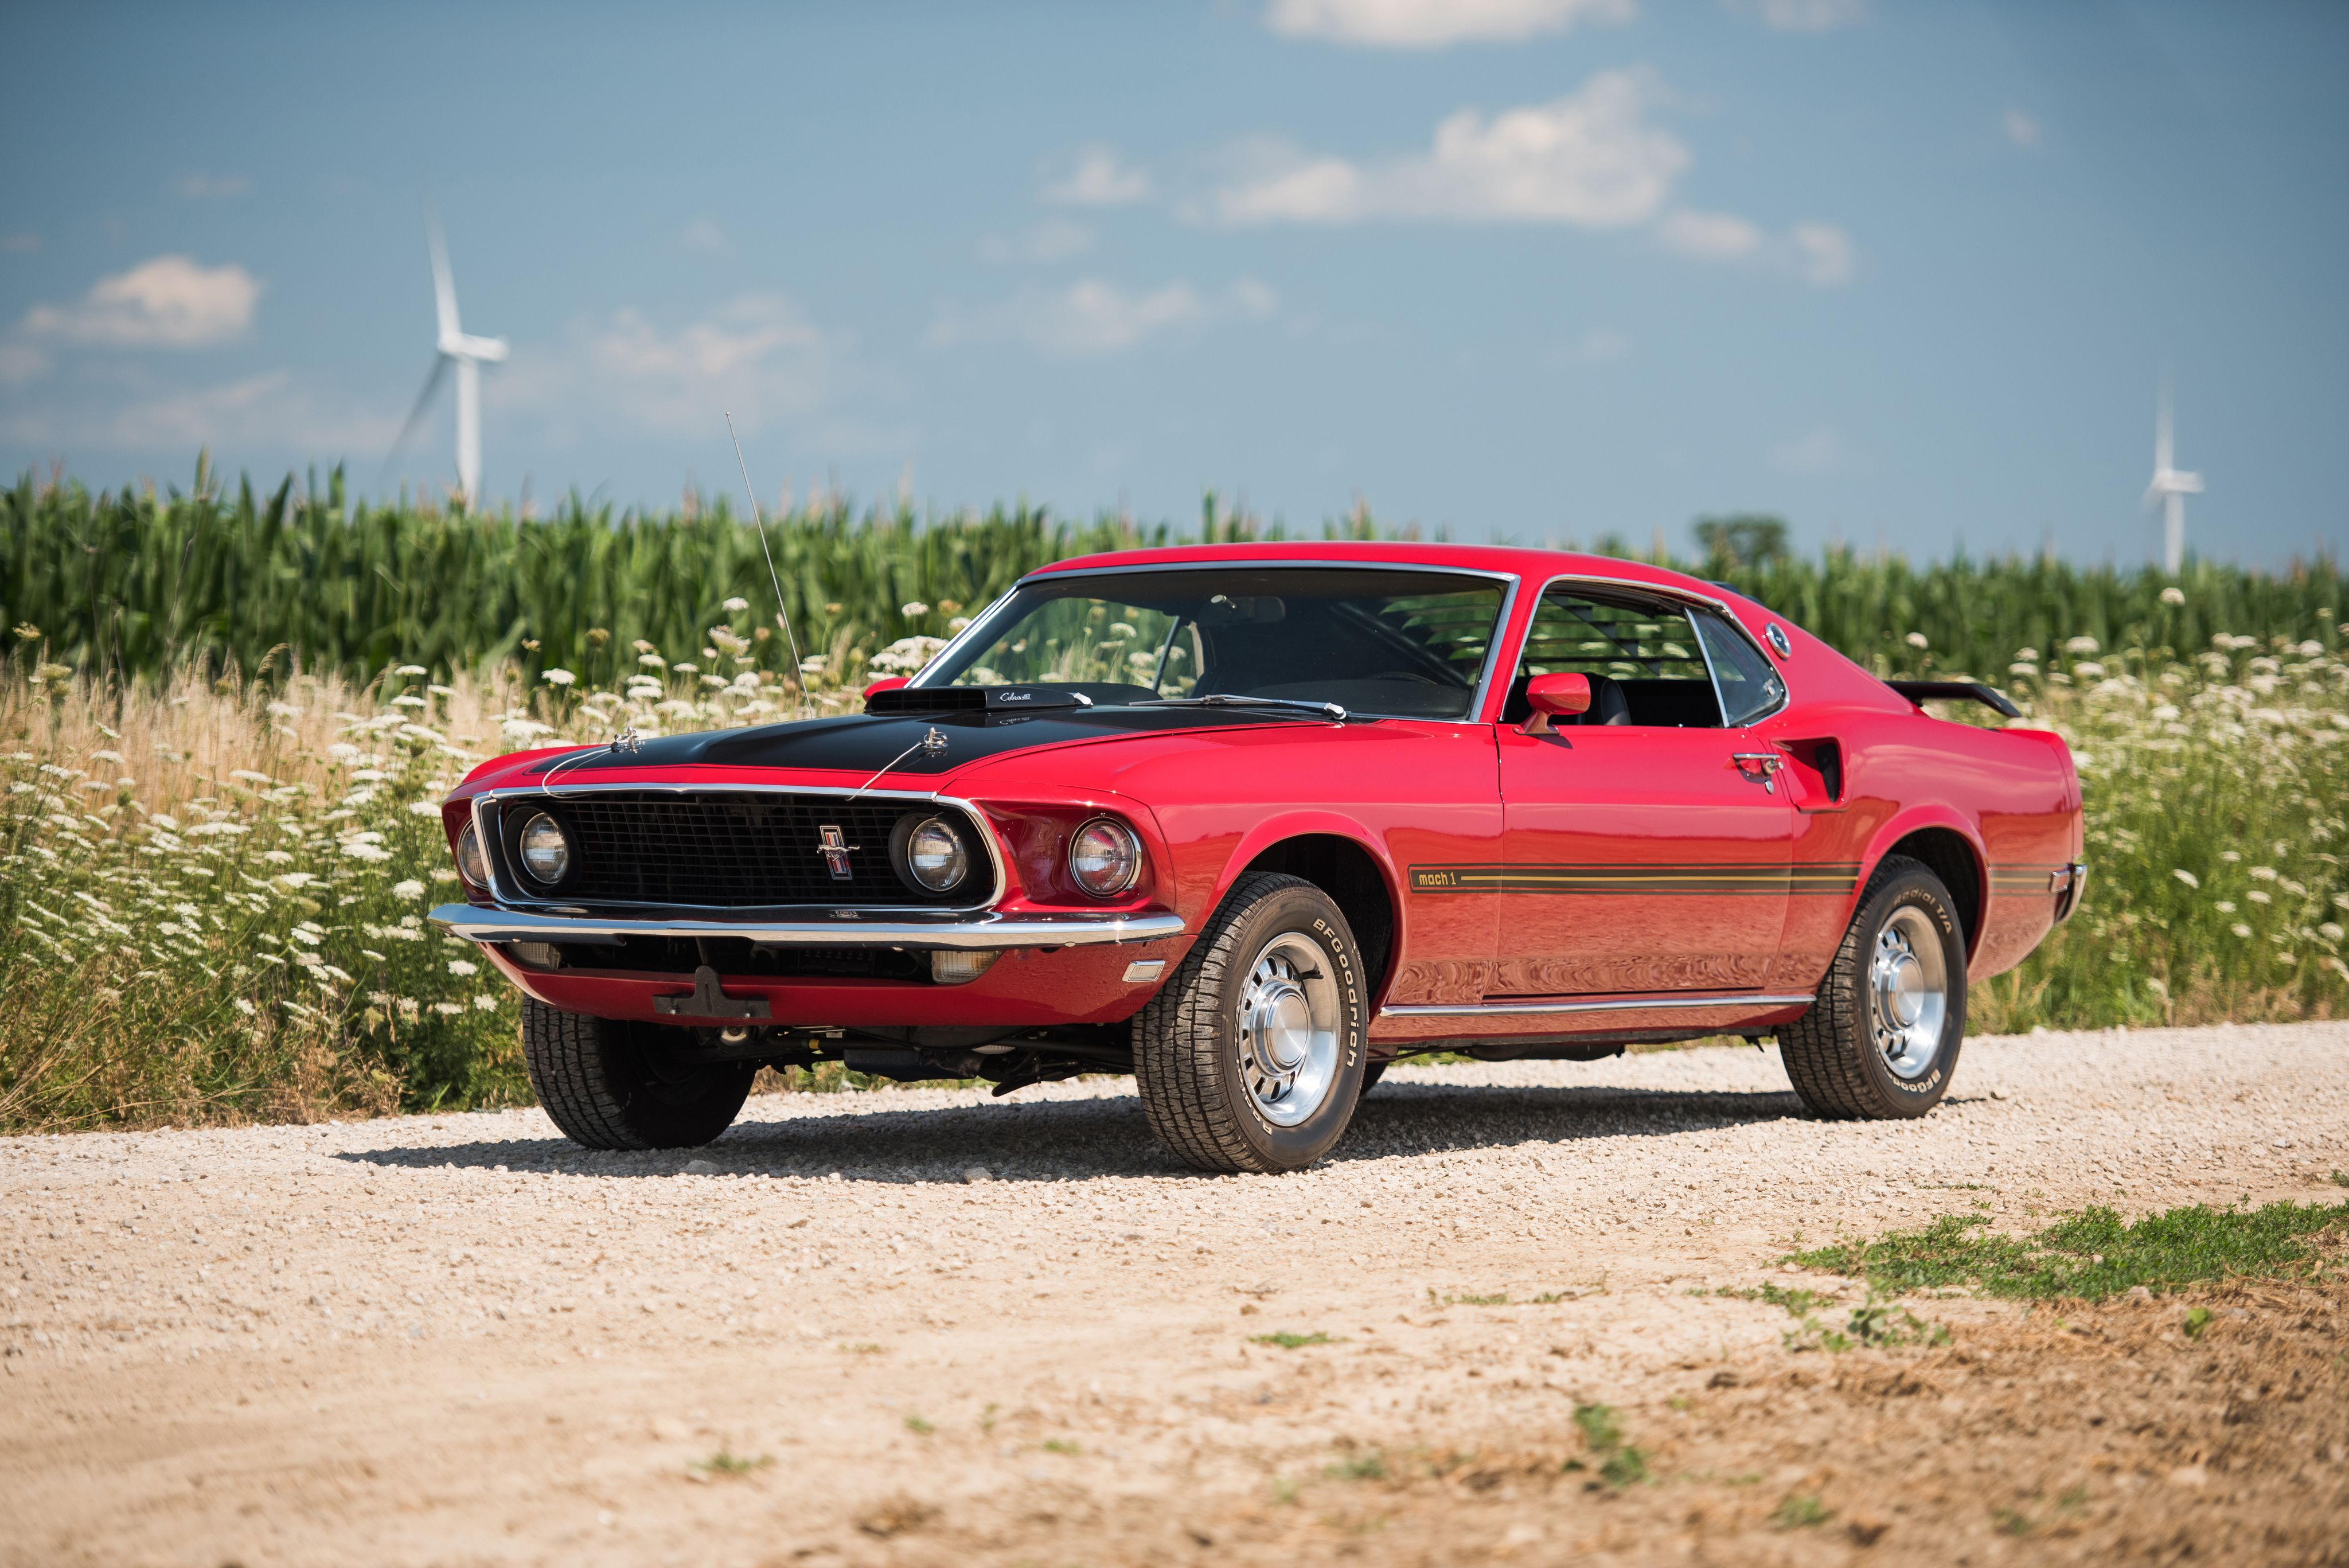 1969 Ford Mustang Mach 1 428 Super Cobra Jet 63c Ford Mustang Mustang Ford